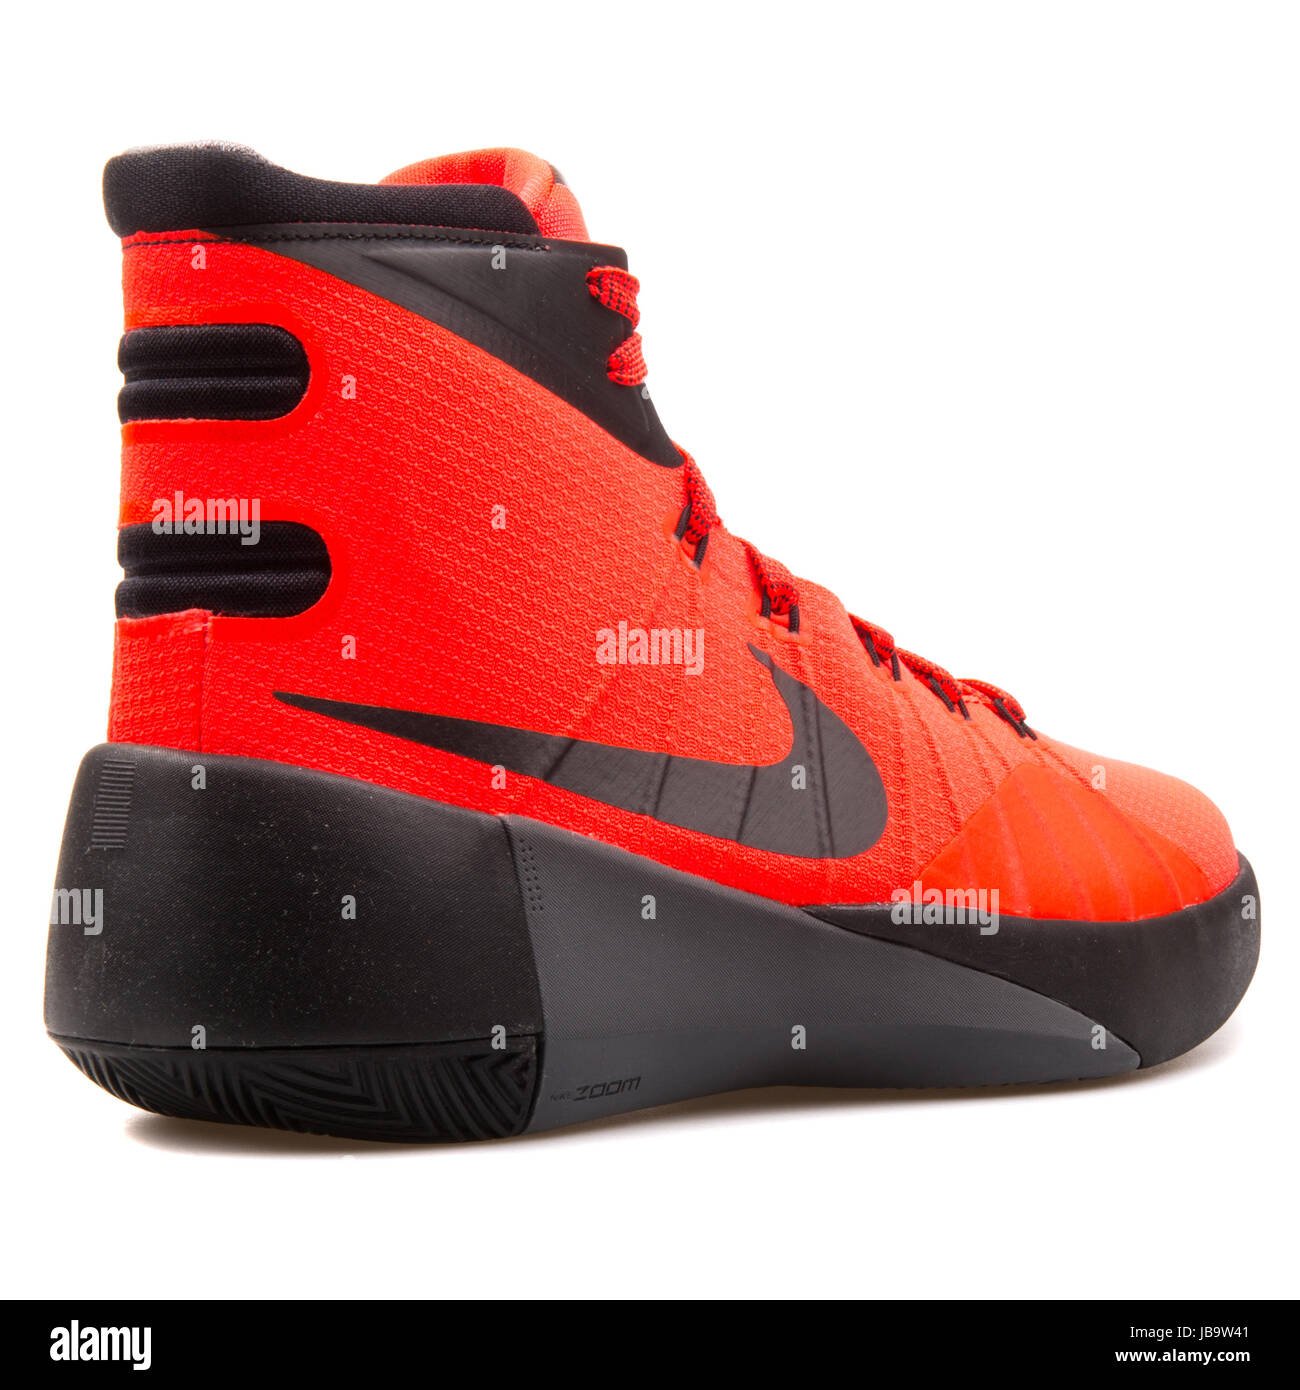 huge discount 486b9 fbb08 Nike Hyperdunk 2015 (GS) Bright Crimson and Black Youth s Basketball Shoes  - 759974-600